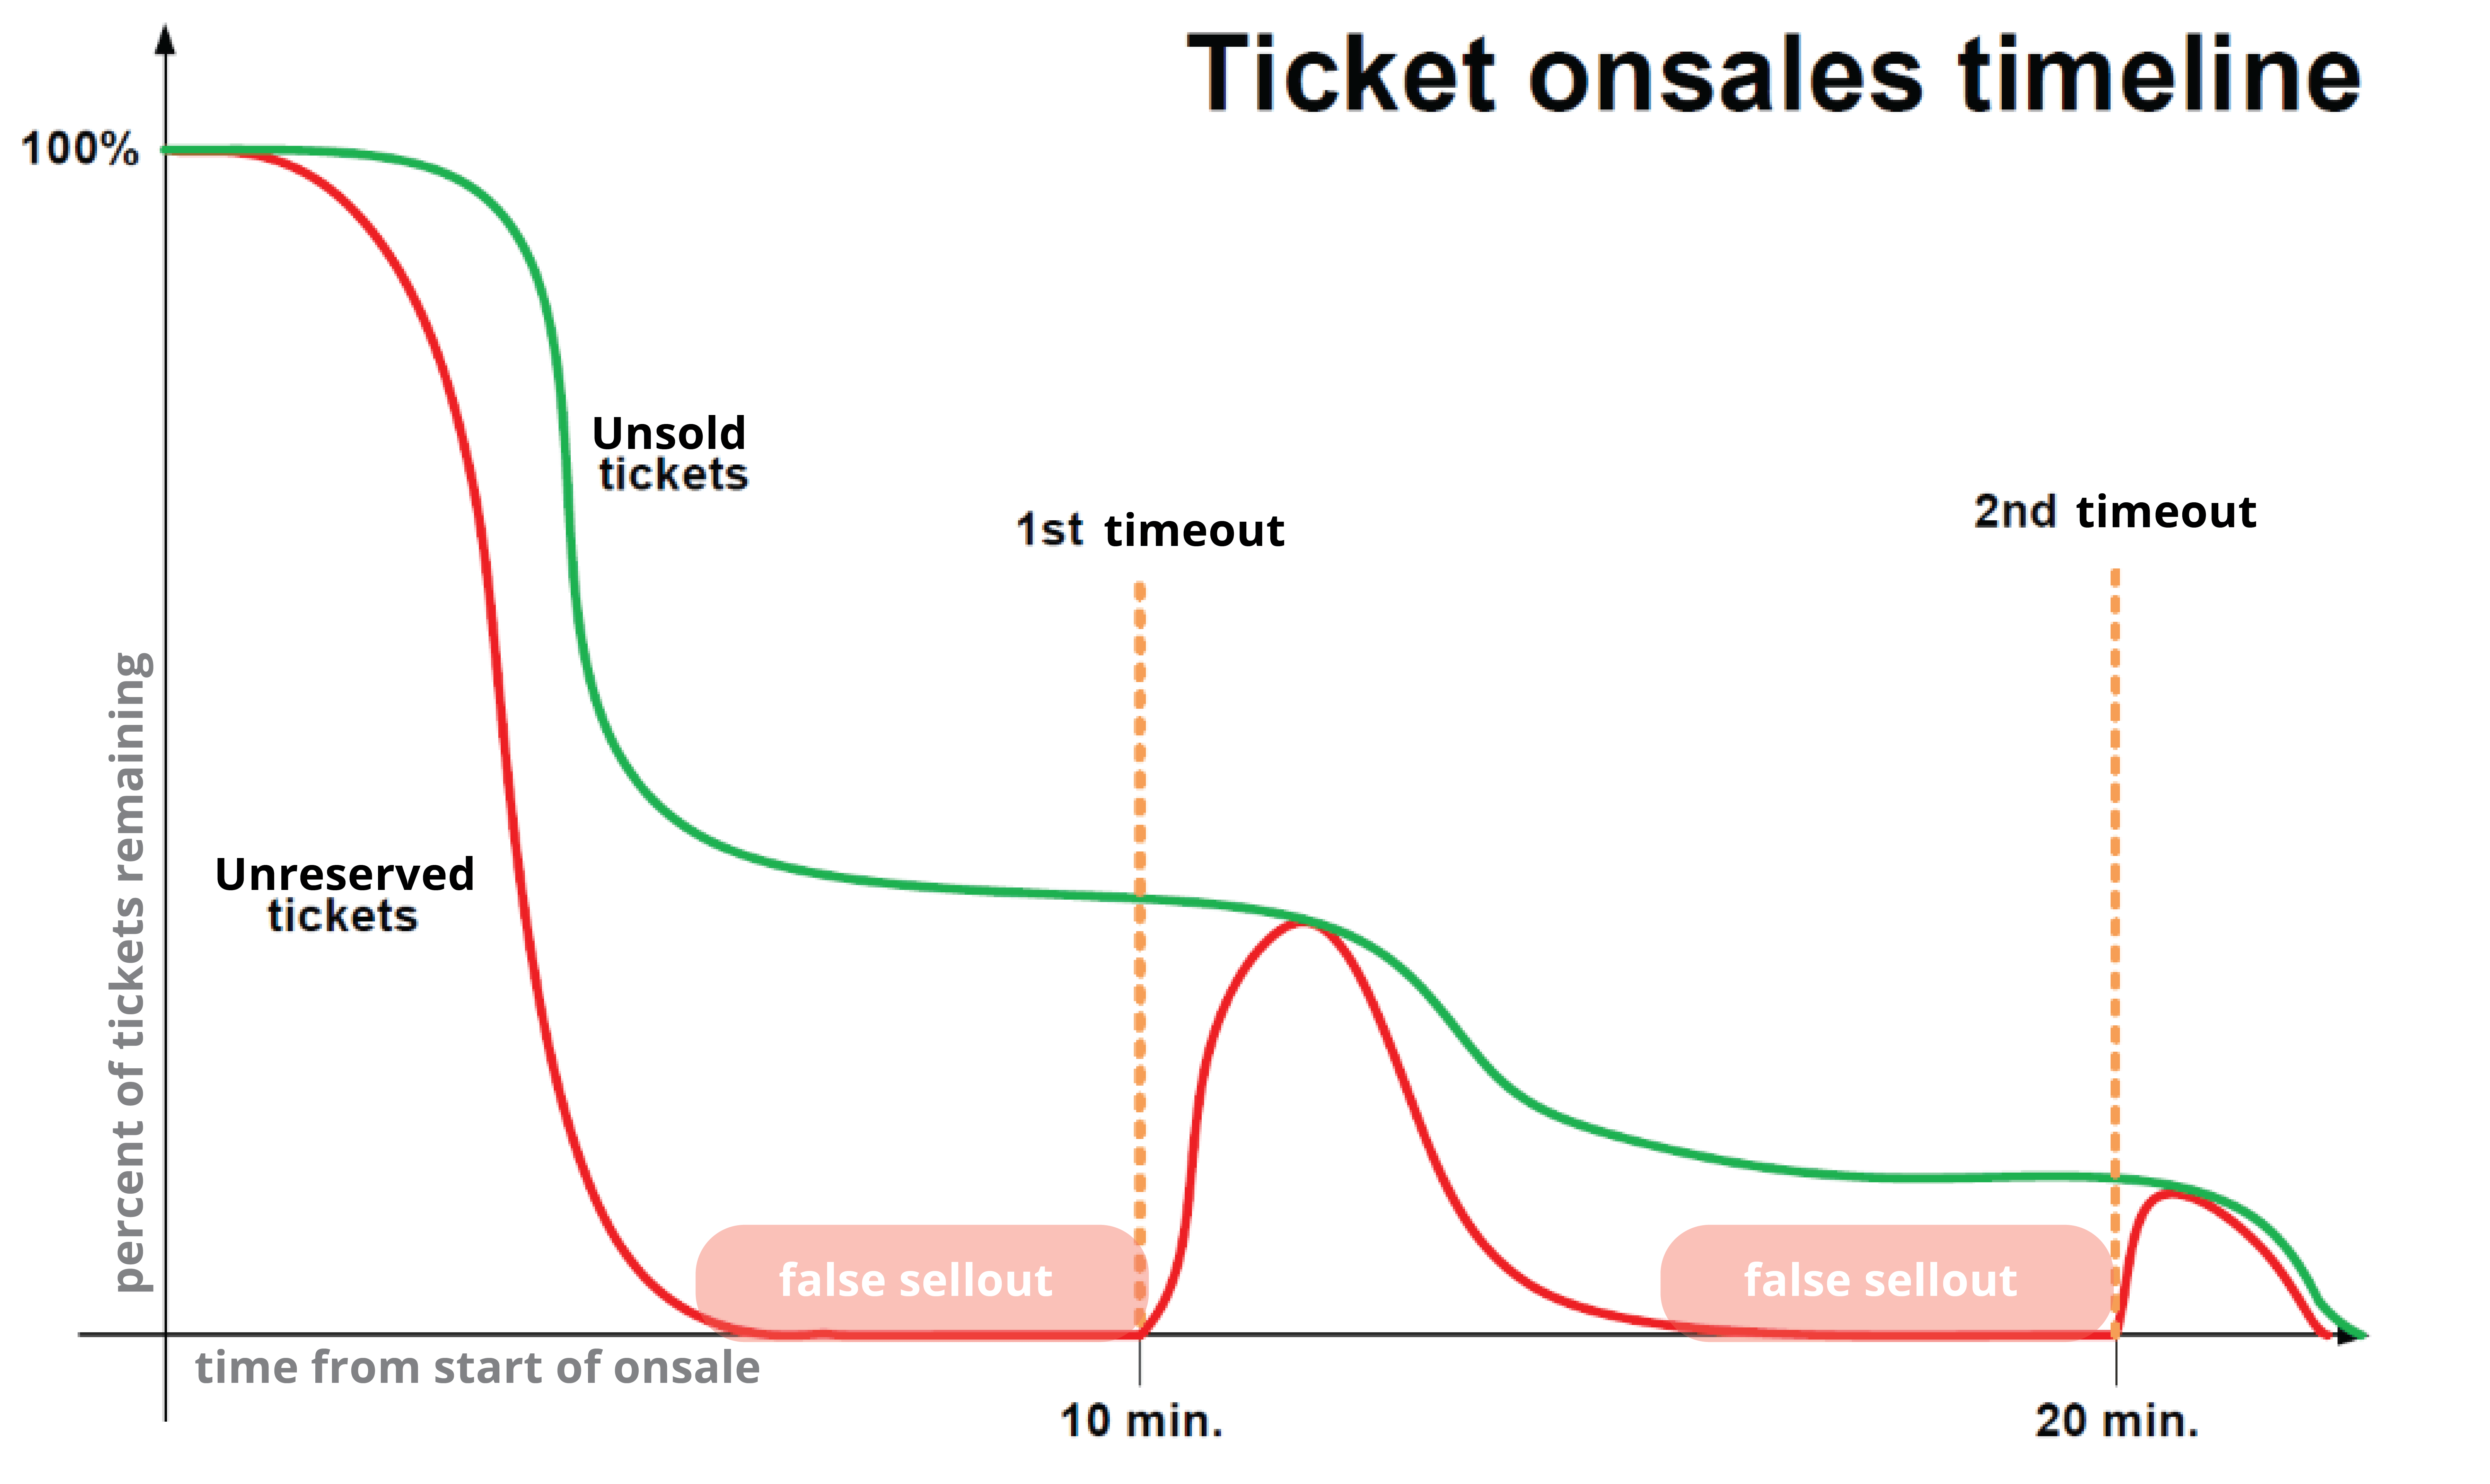 False sellouts during onsale timeline